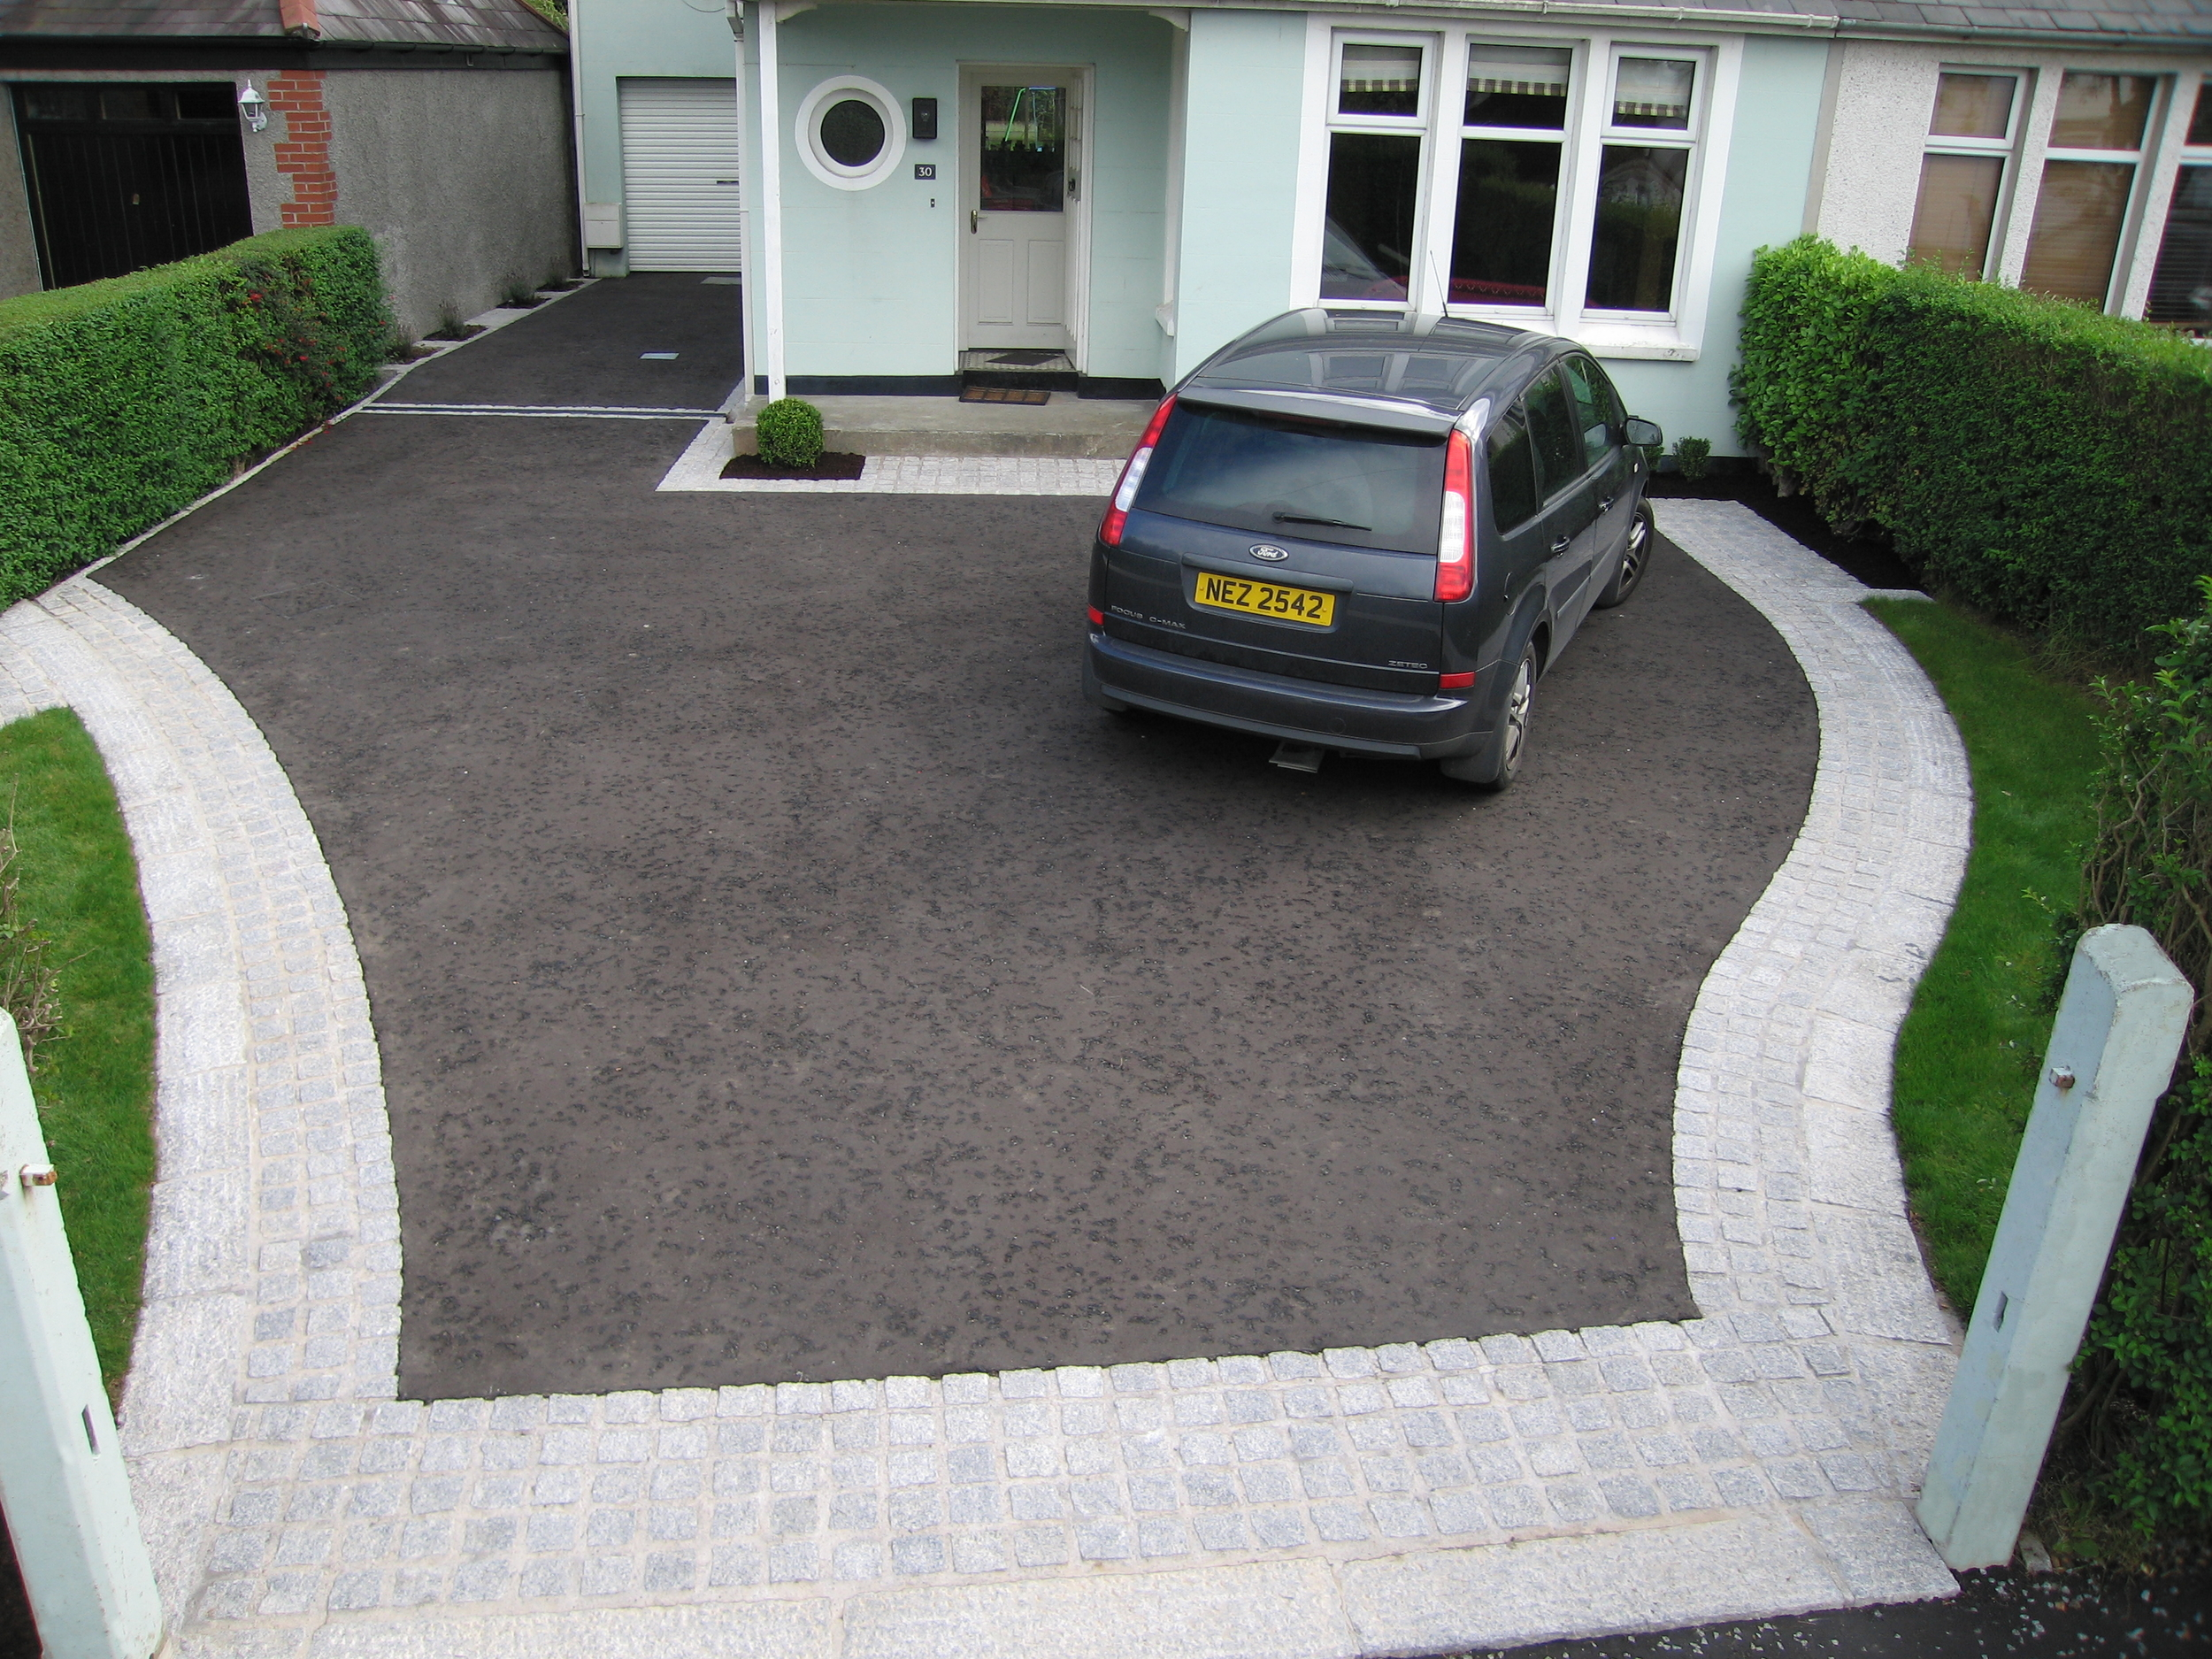 Belfast driveway with asphalt and granite paving